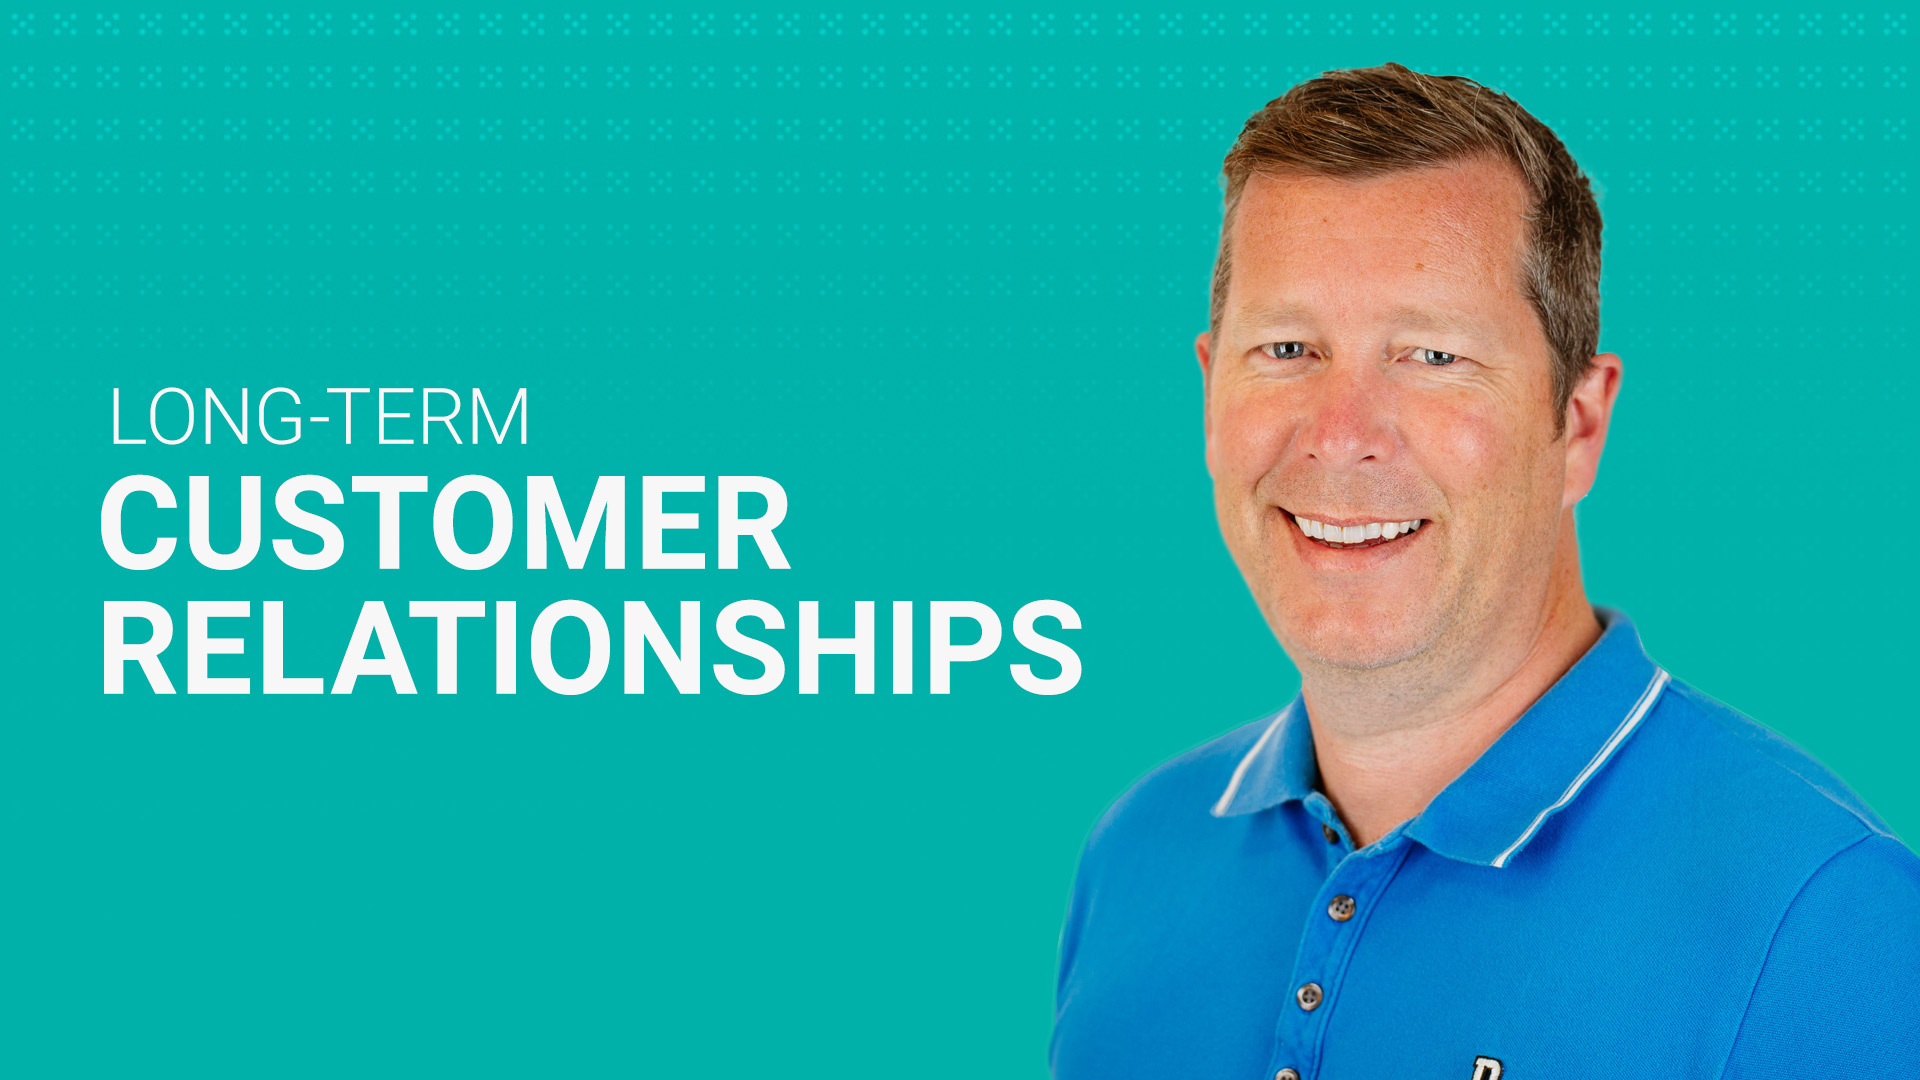 The Secret to Long-Term Customer Relationships